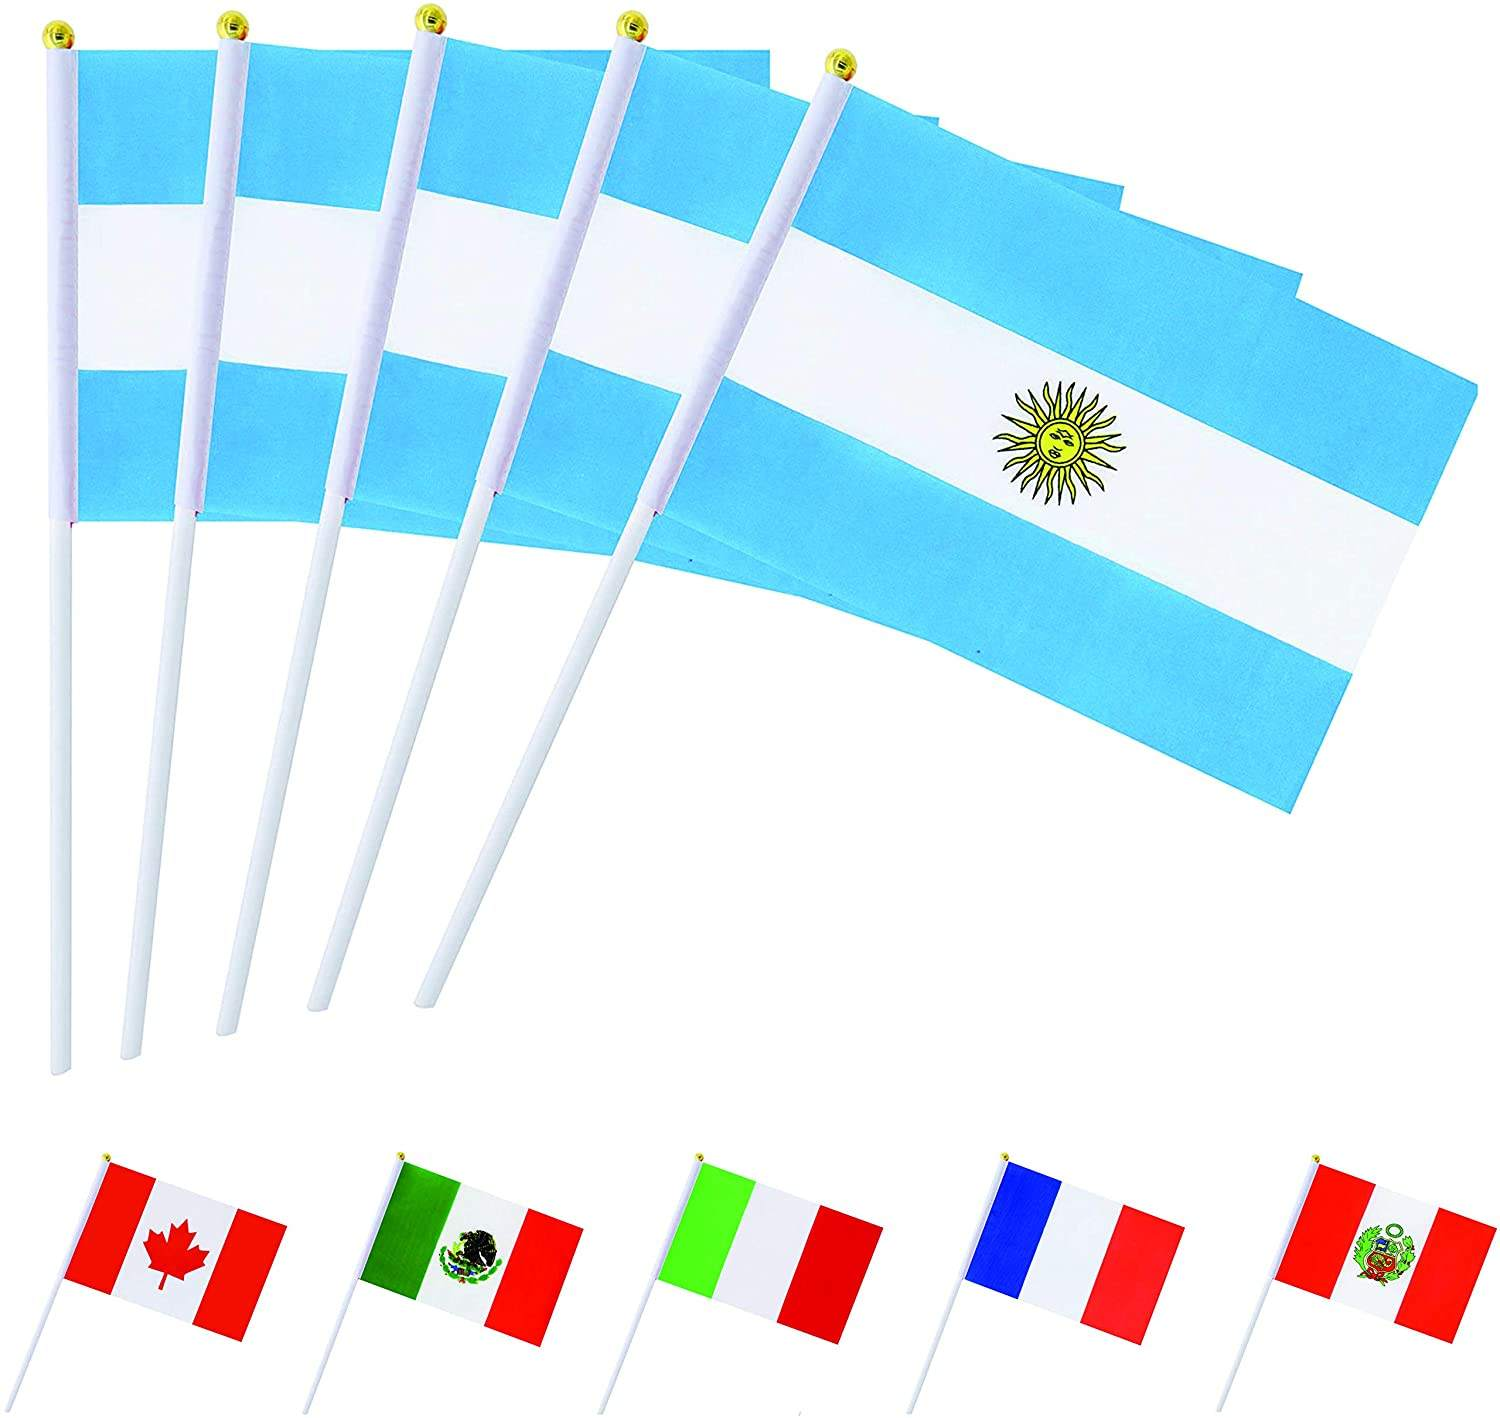 30 Pack Hand Held Kleine Argentinië Nationale Vlaggen Op Stok International World Land Stick Vlaggen Banners Argentijnse Hand Vlag